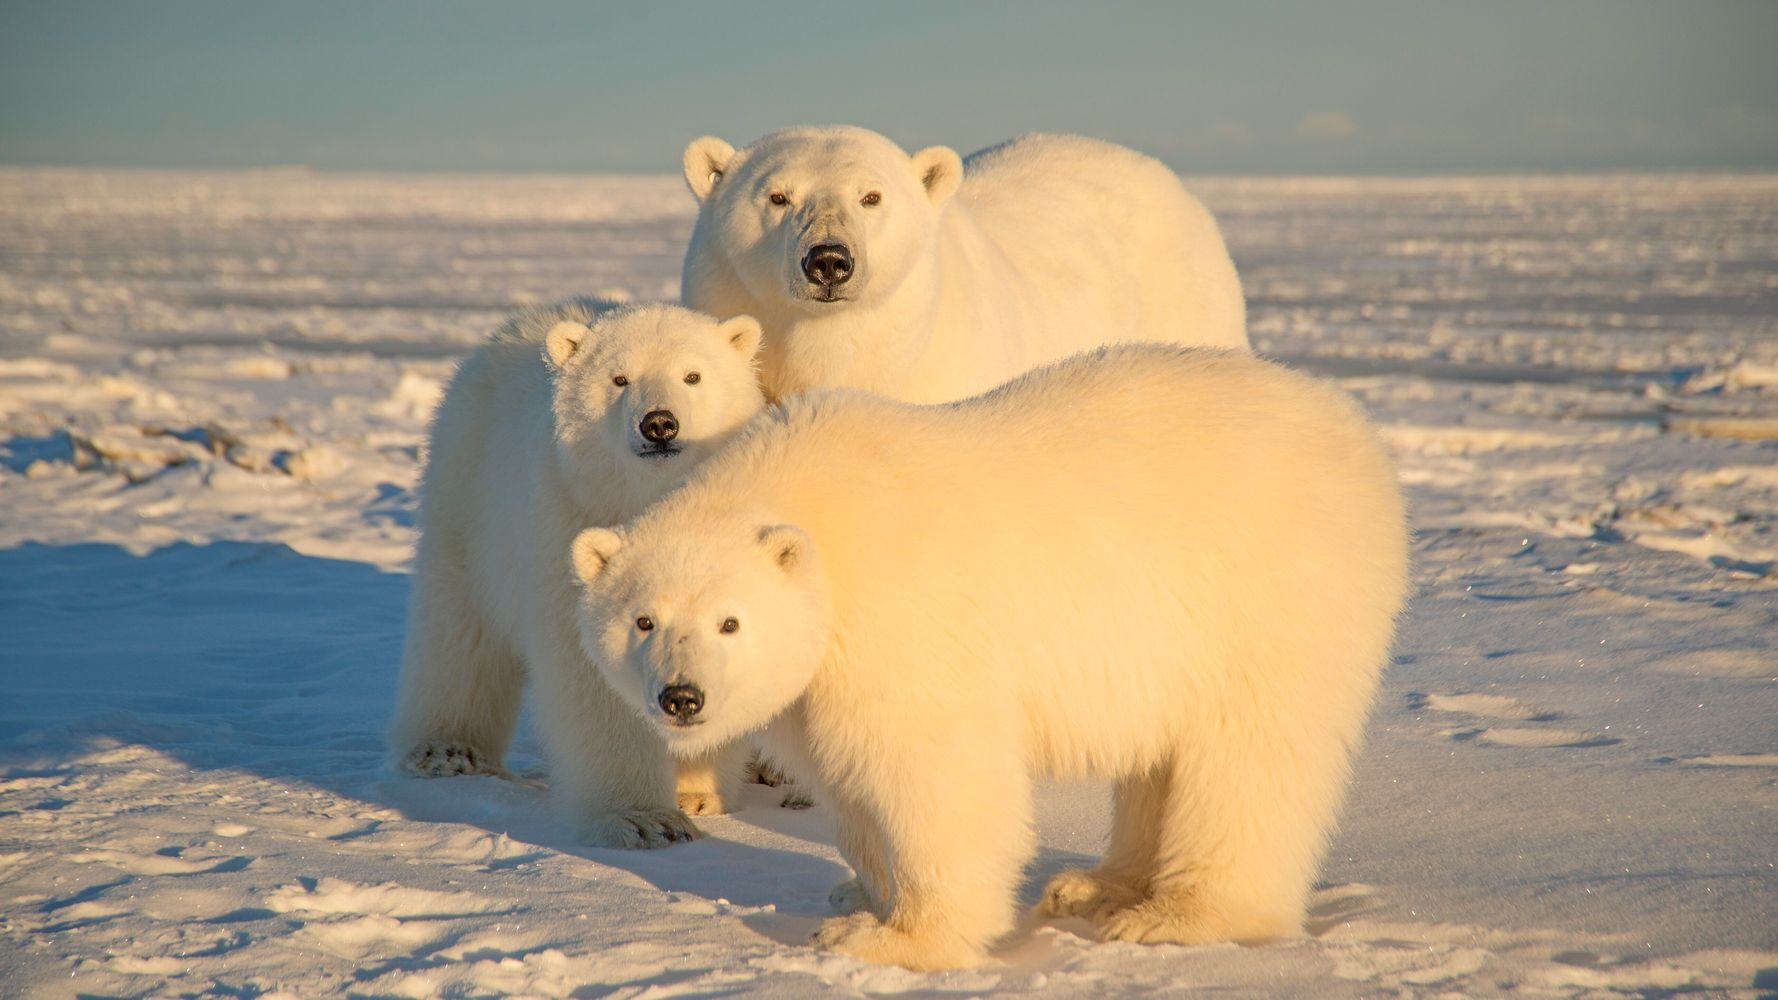 Goldman Sachs Is First Major U.S. Bank To Reject Financing Oil Drilling In The Arctic